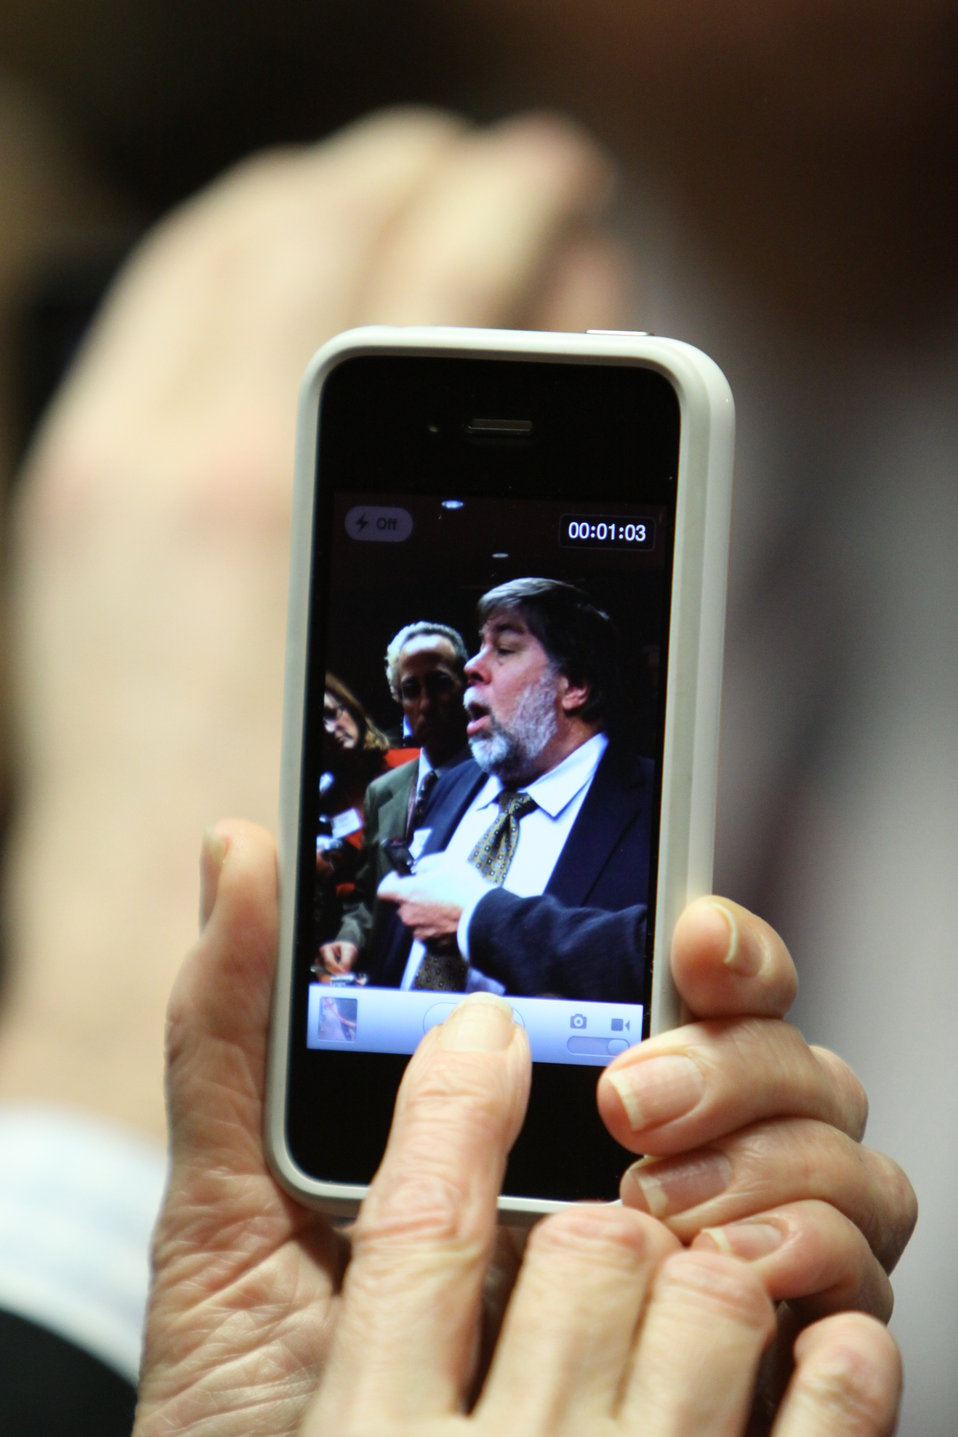 Reporter Captures Apple Co-Founder Steve Wozniak's Statements Following the Meeting